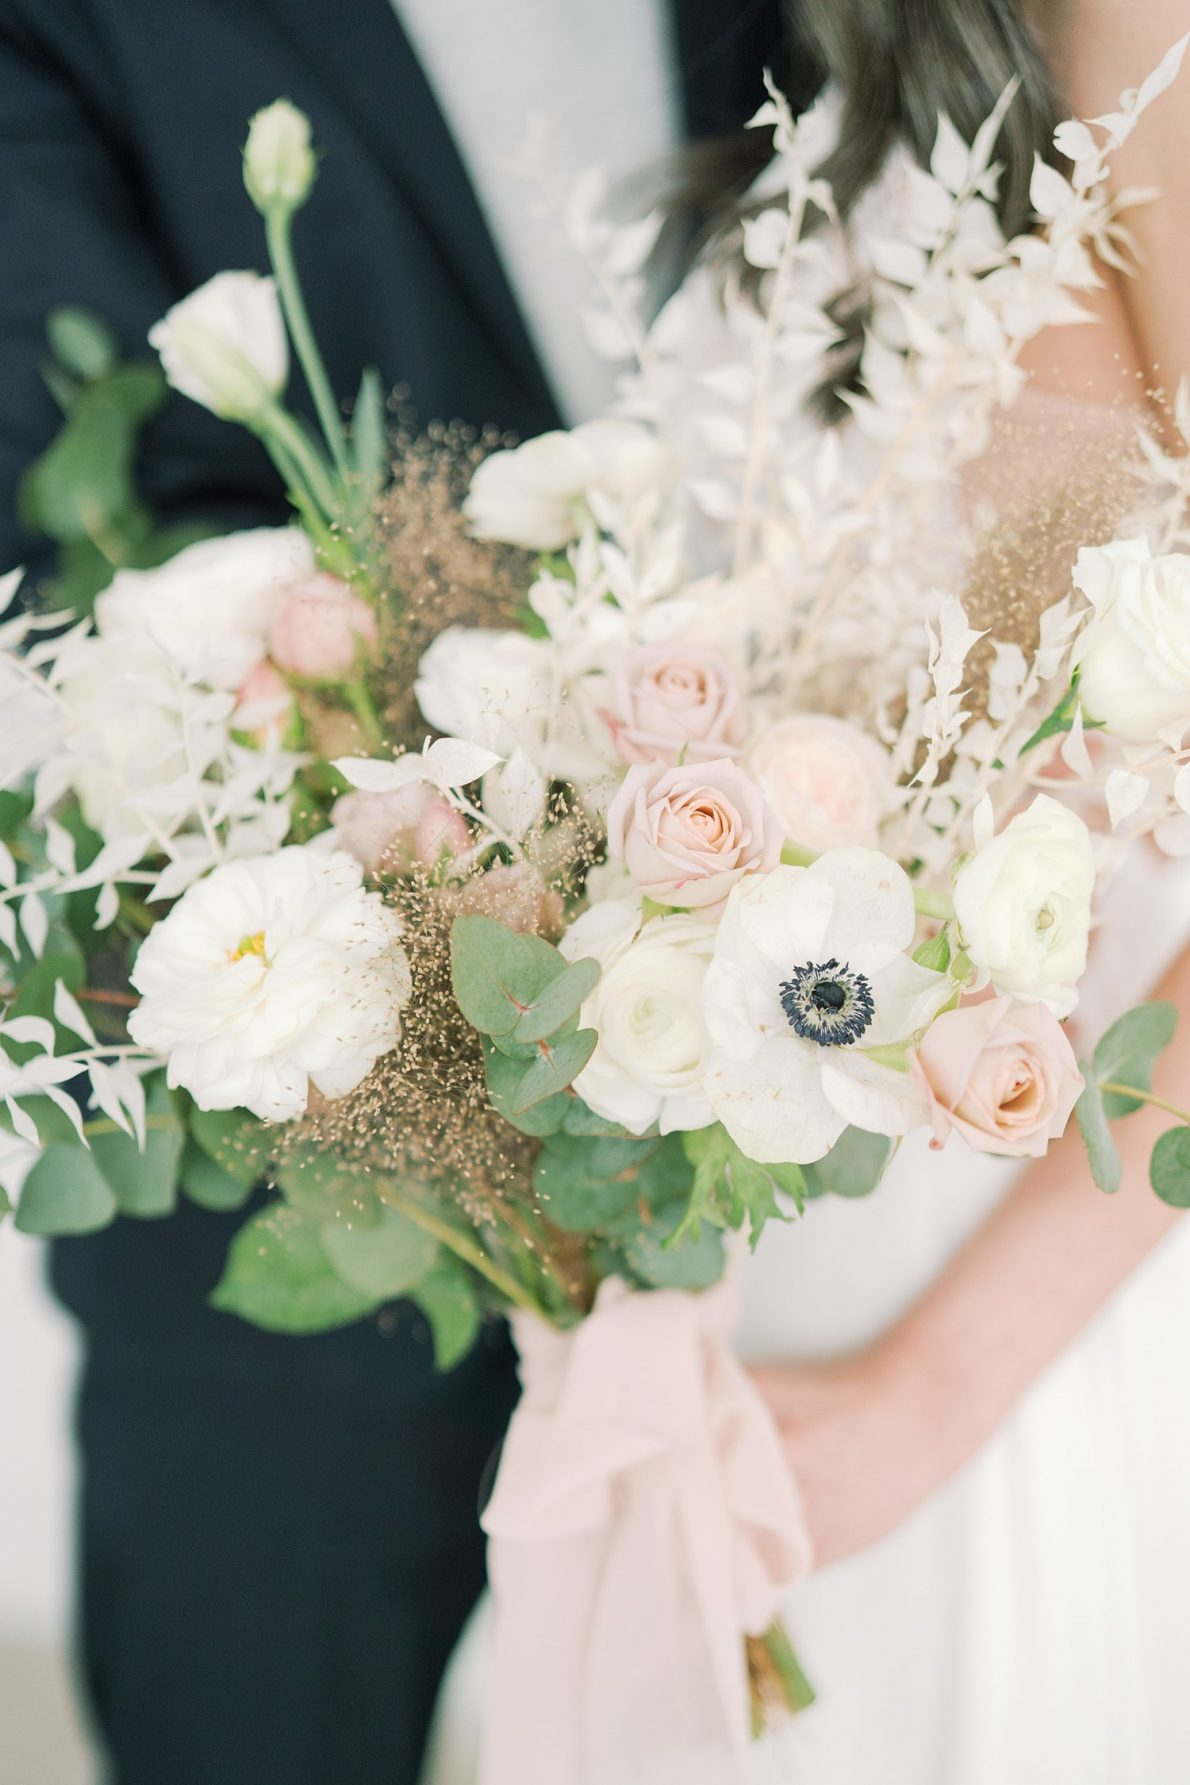 Dreamy Toronto Engagement Flowers at Mint Room Studio Conservatory